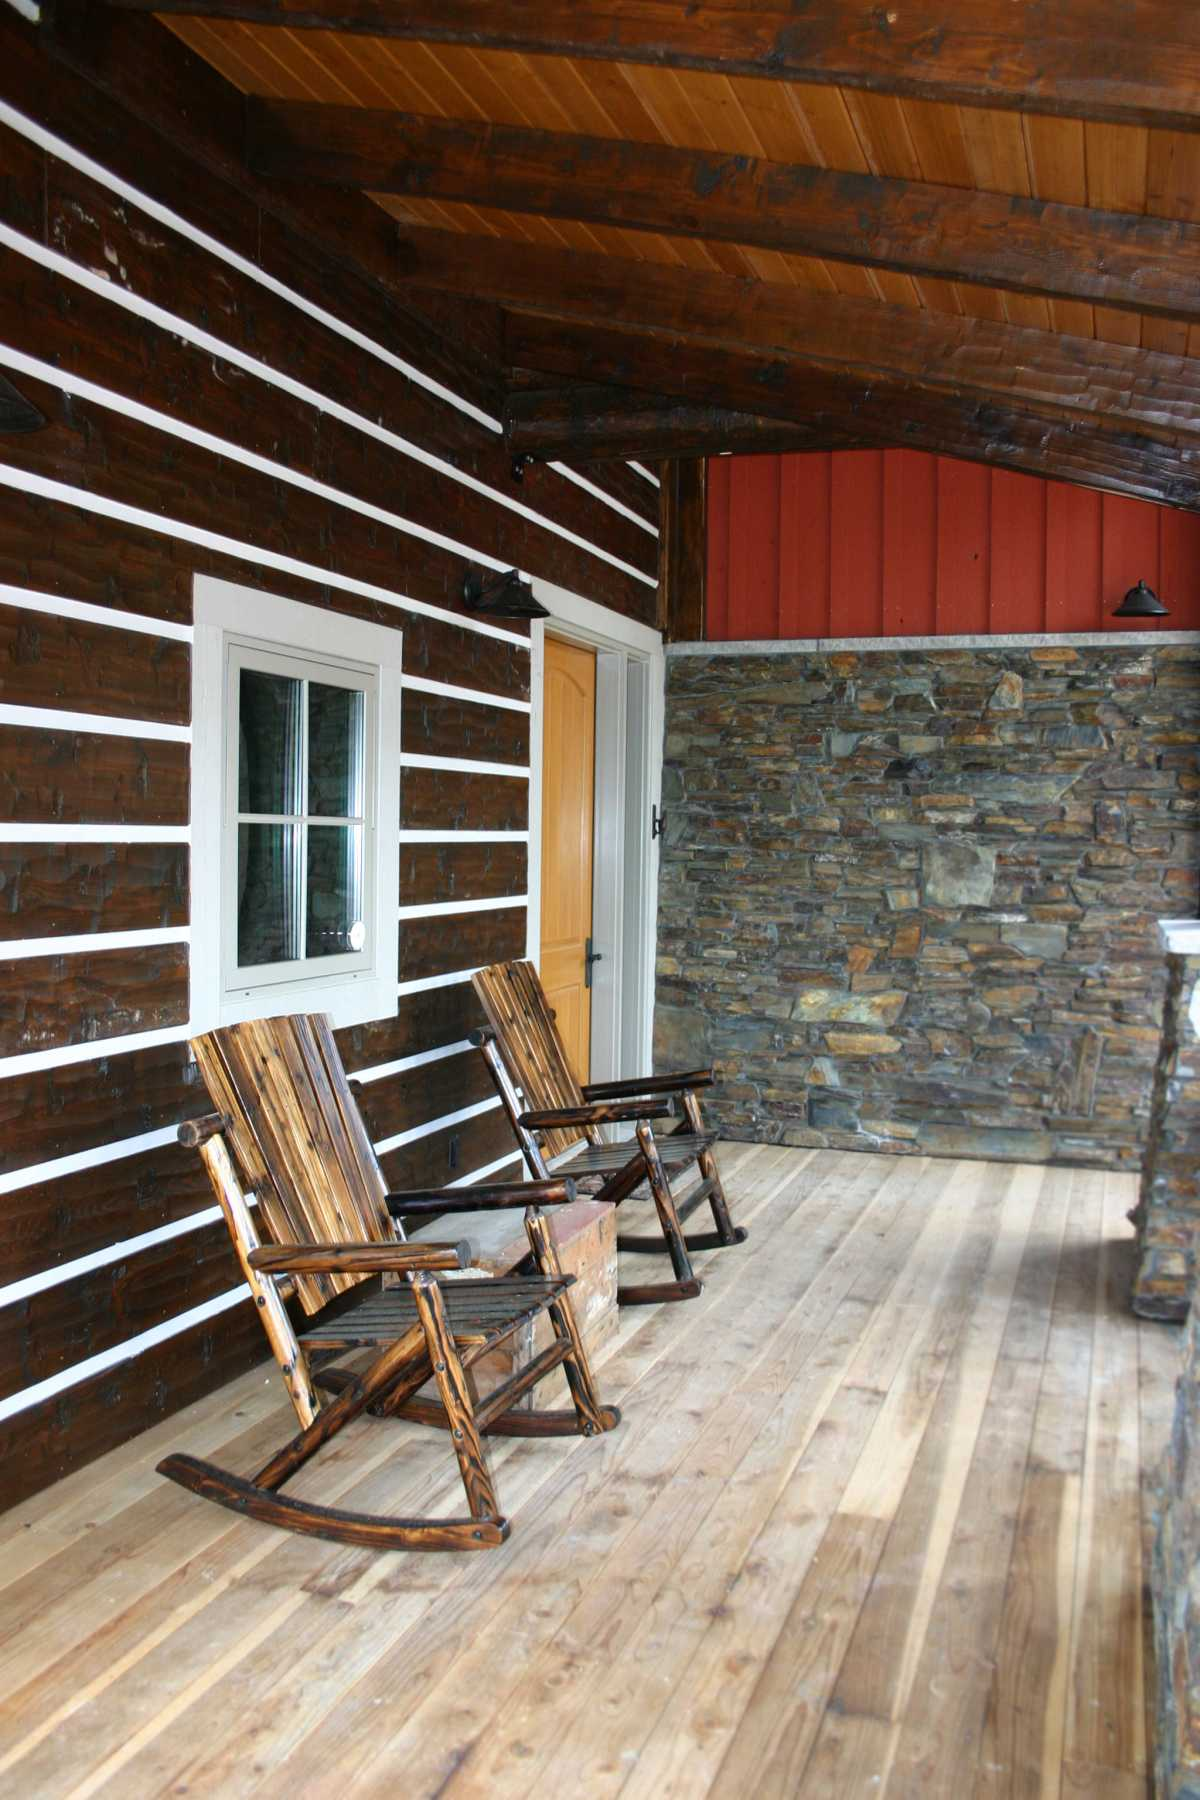 The cozy back porch complete with rustic rocking chairs!